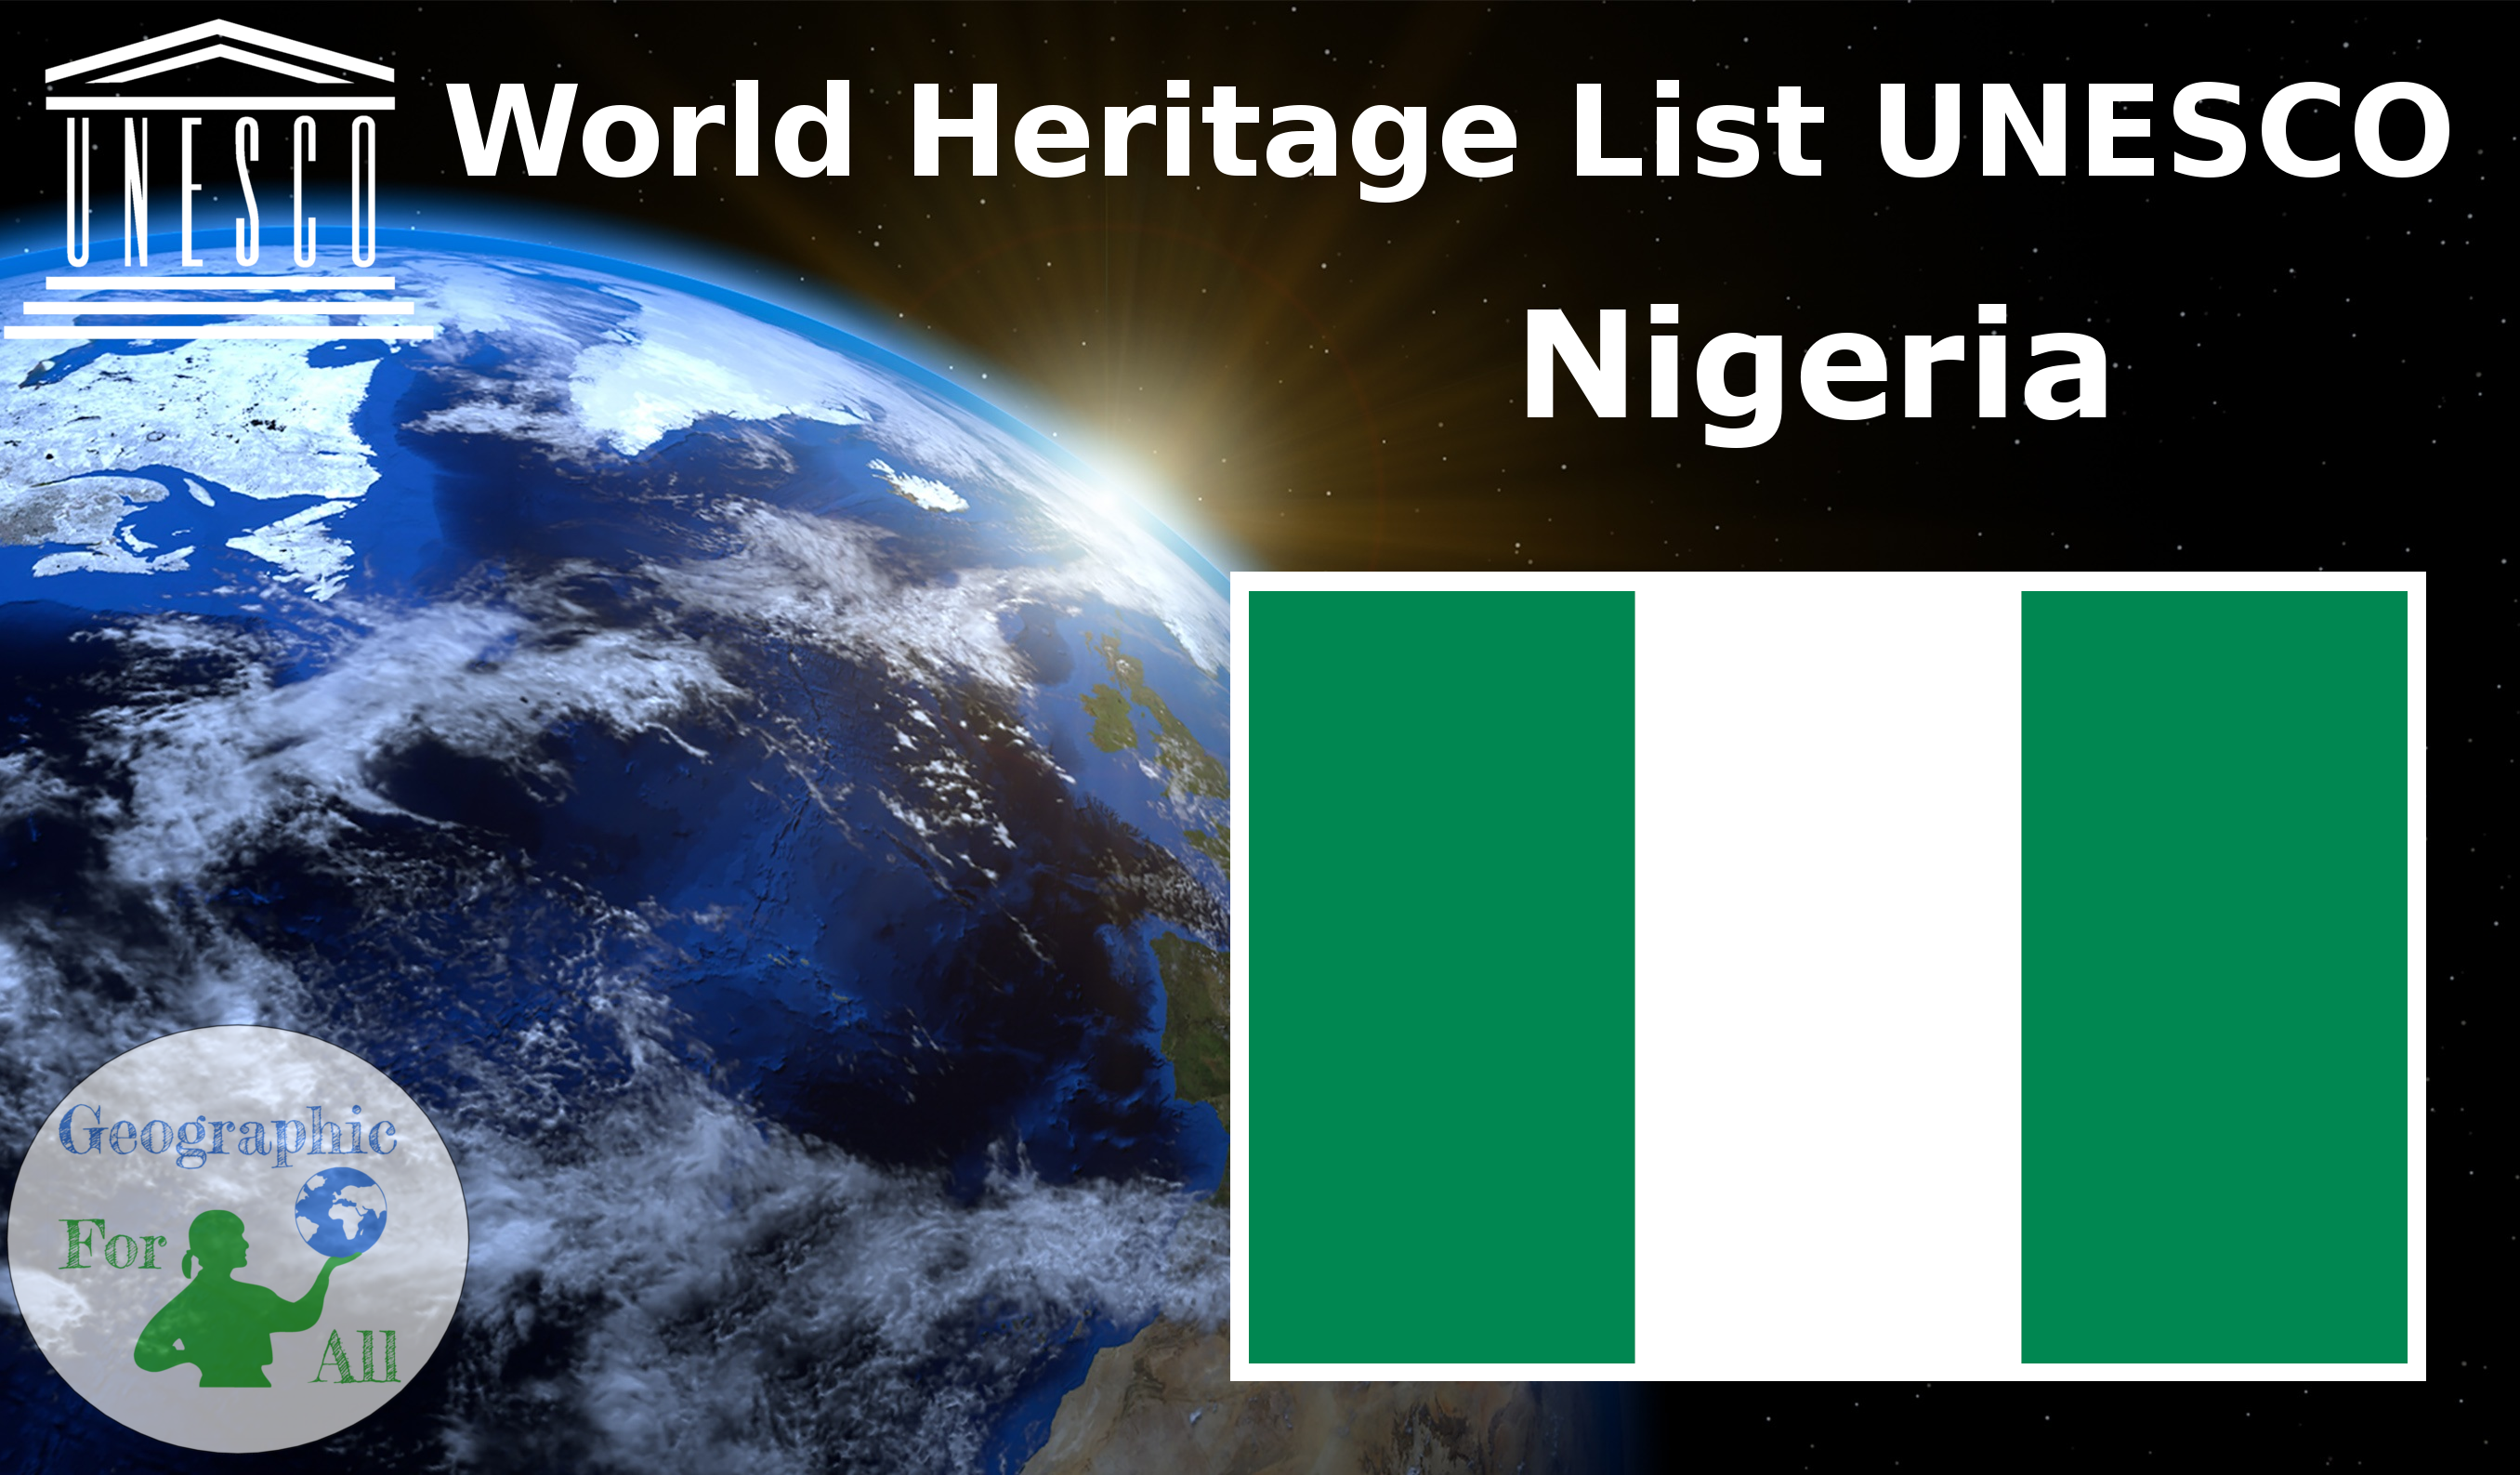 World Heritage List UNESCO - Nigeria